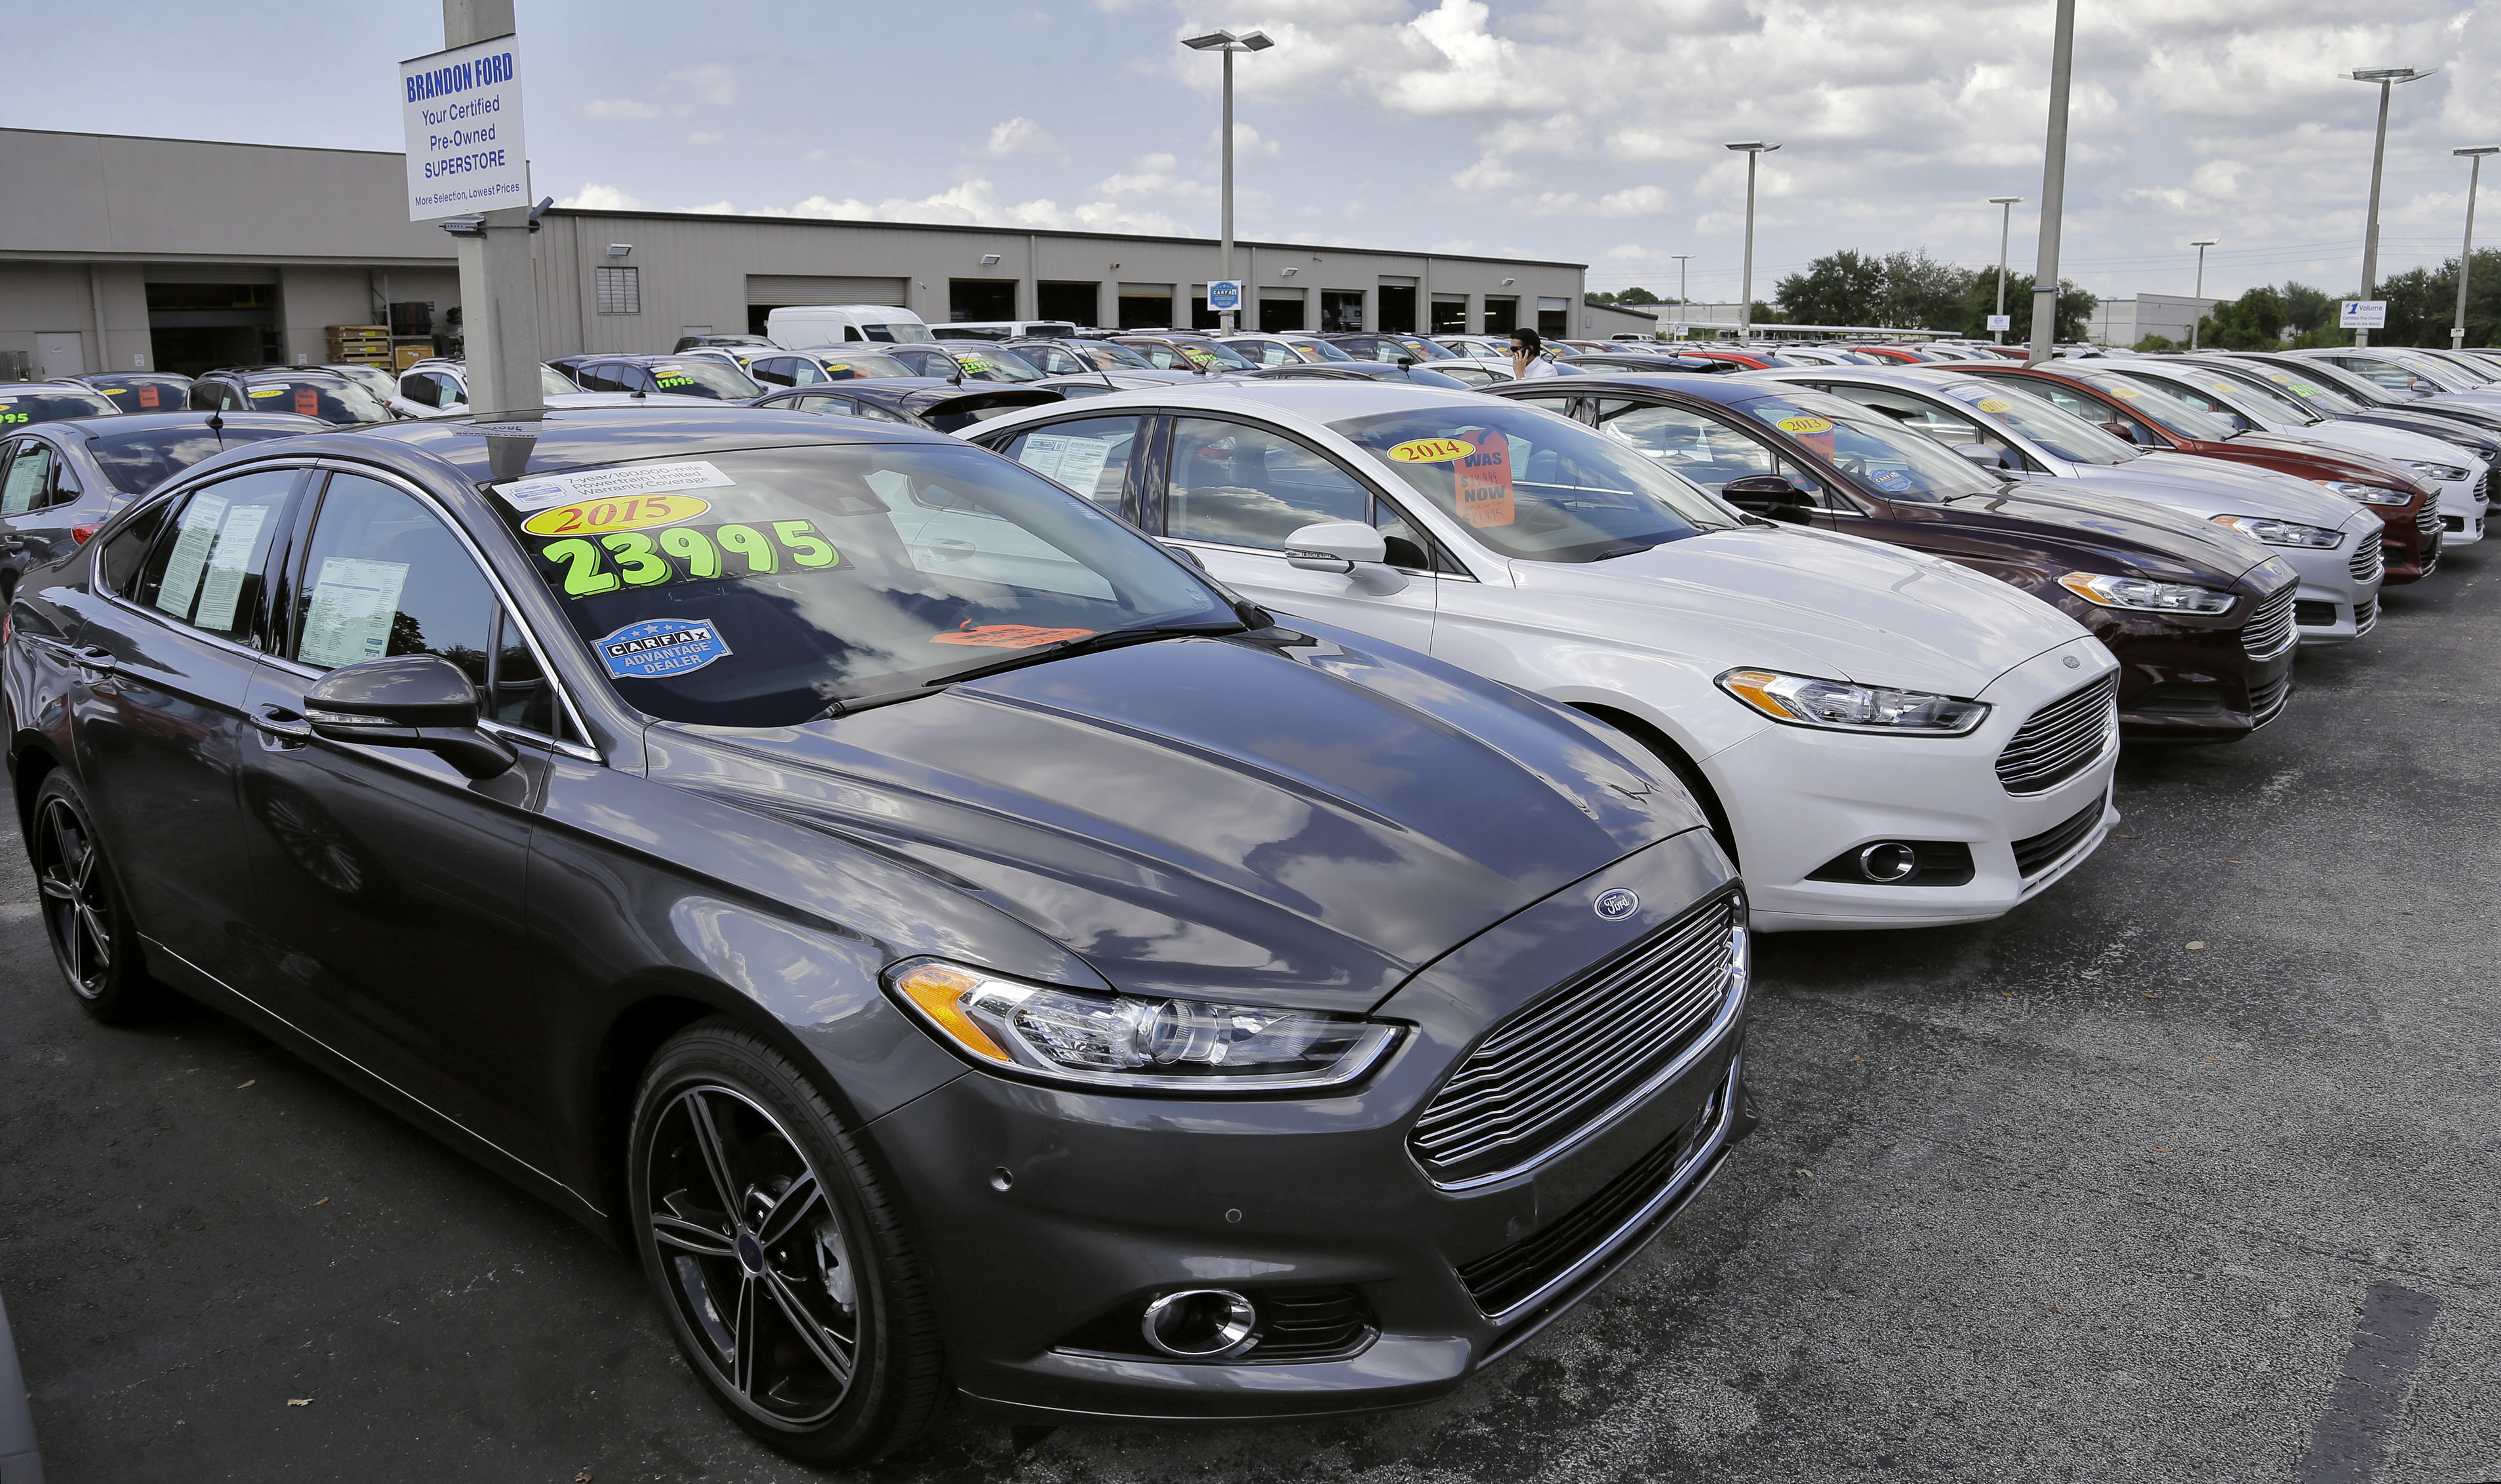 Buying a Used Car Can Be Better Than Buying New